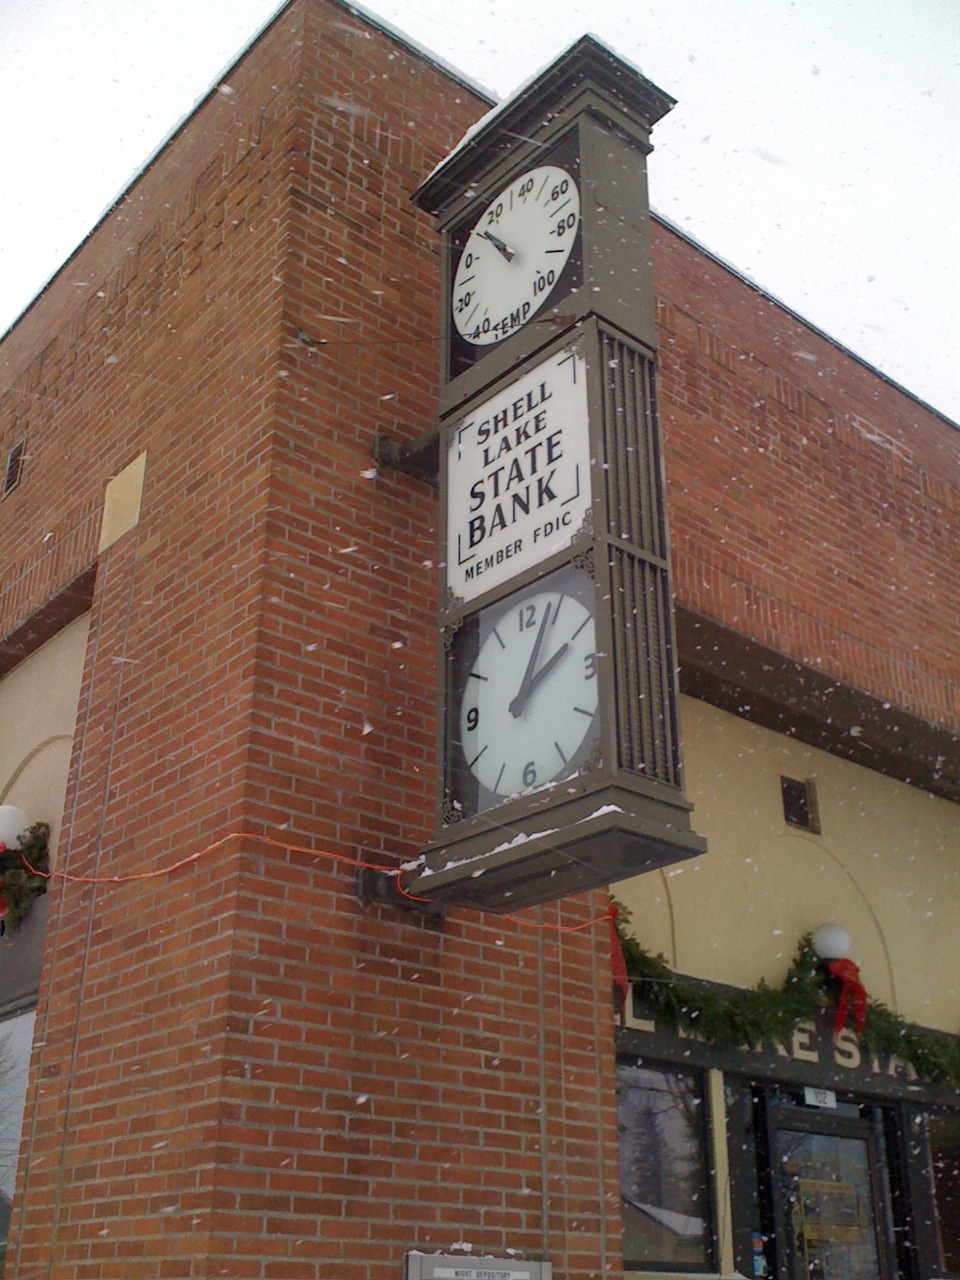 The town bank reports 12 degF, the actual temperature was closer to 23 degF